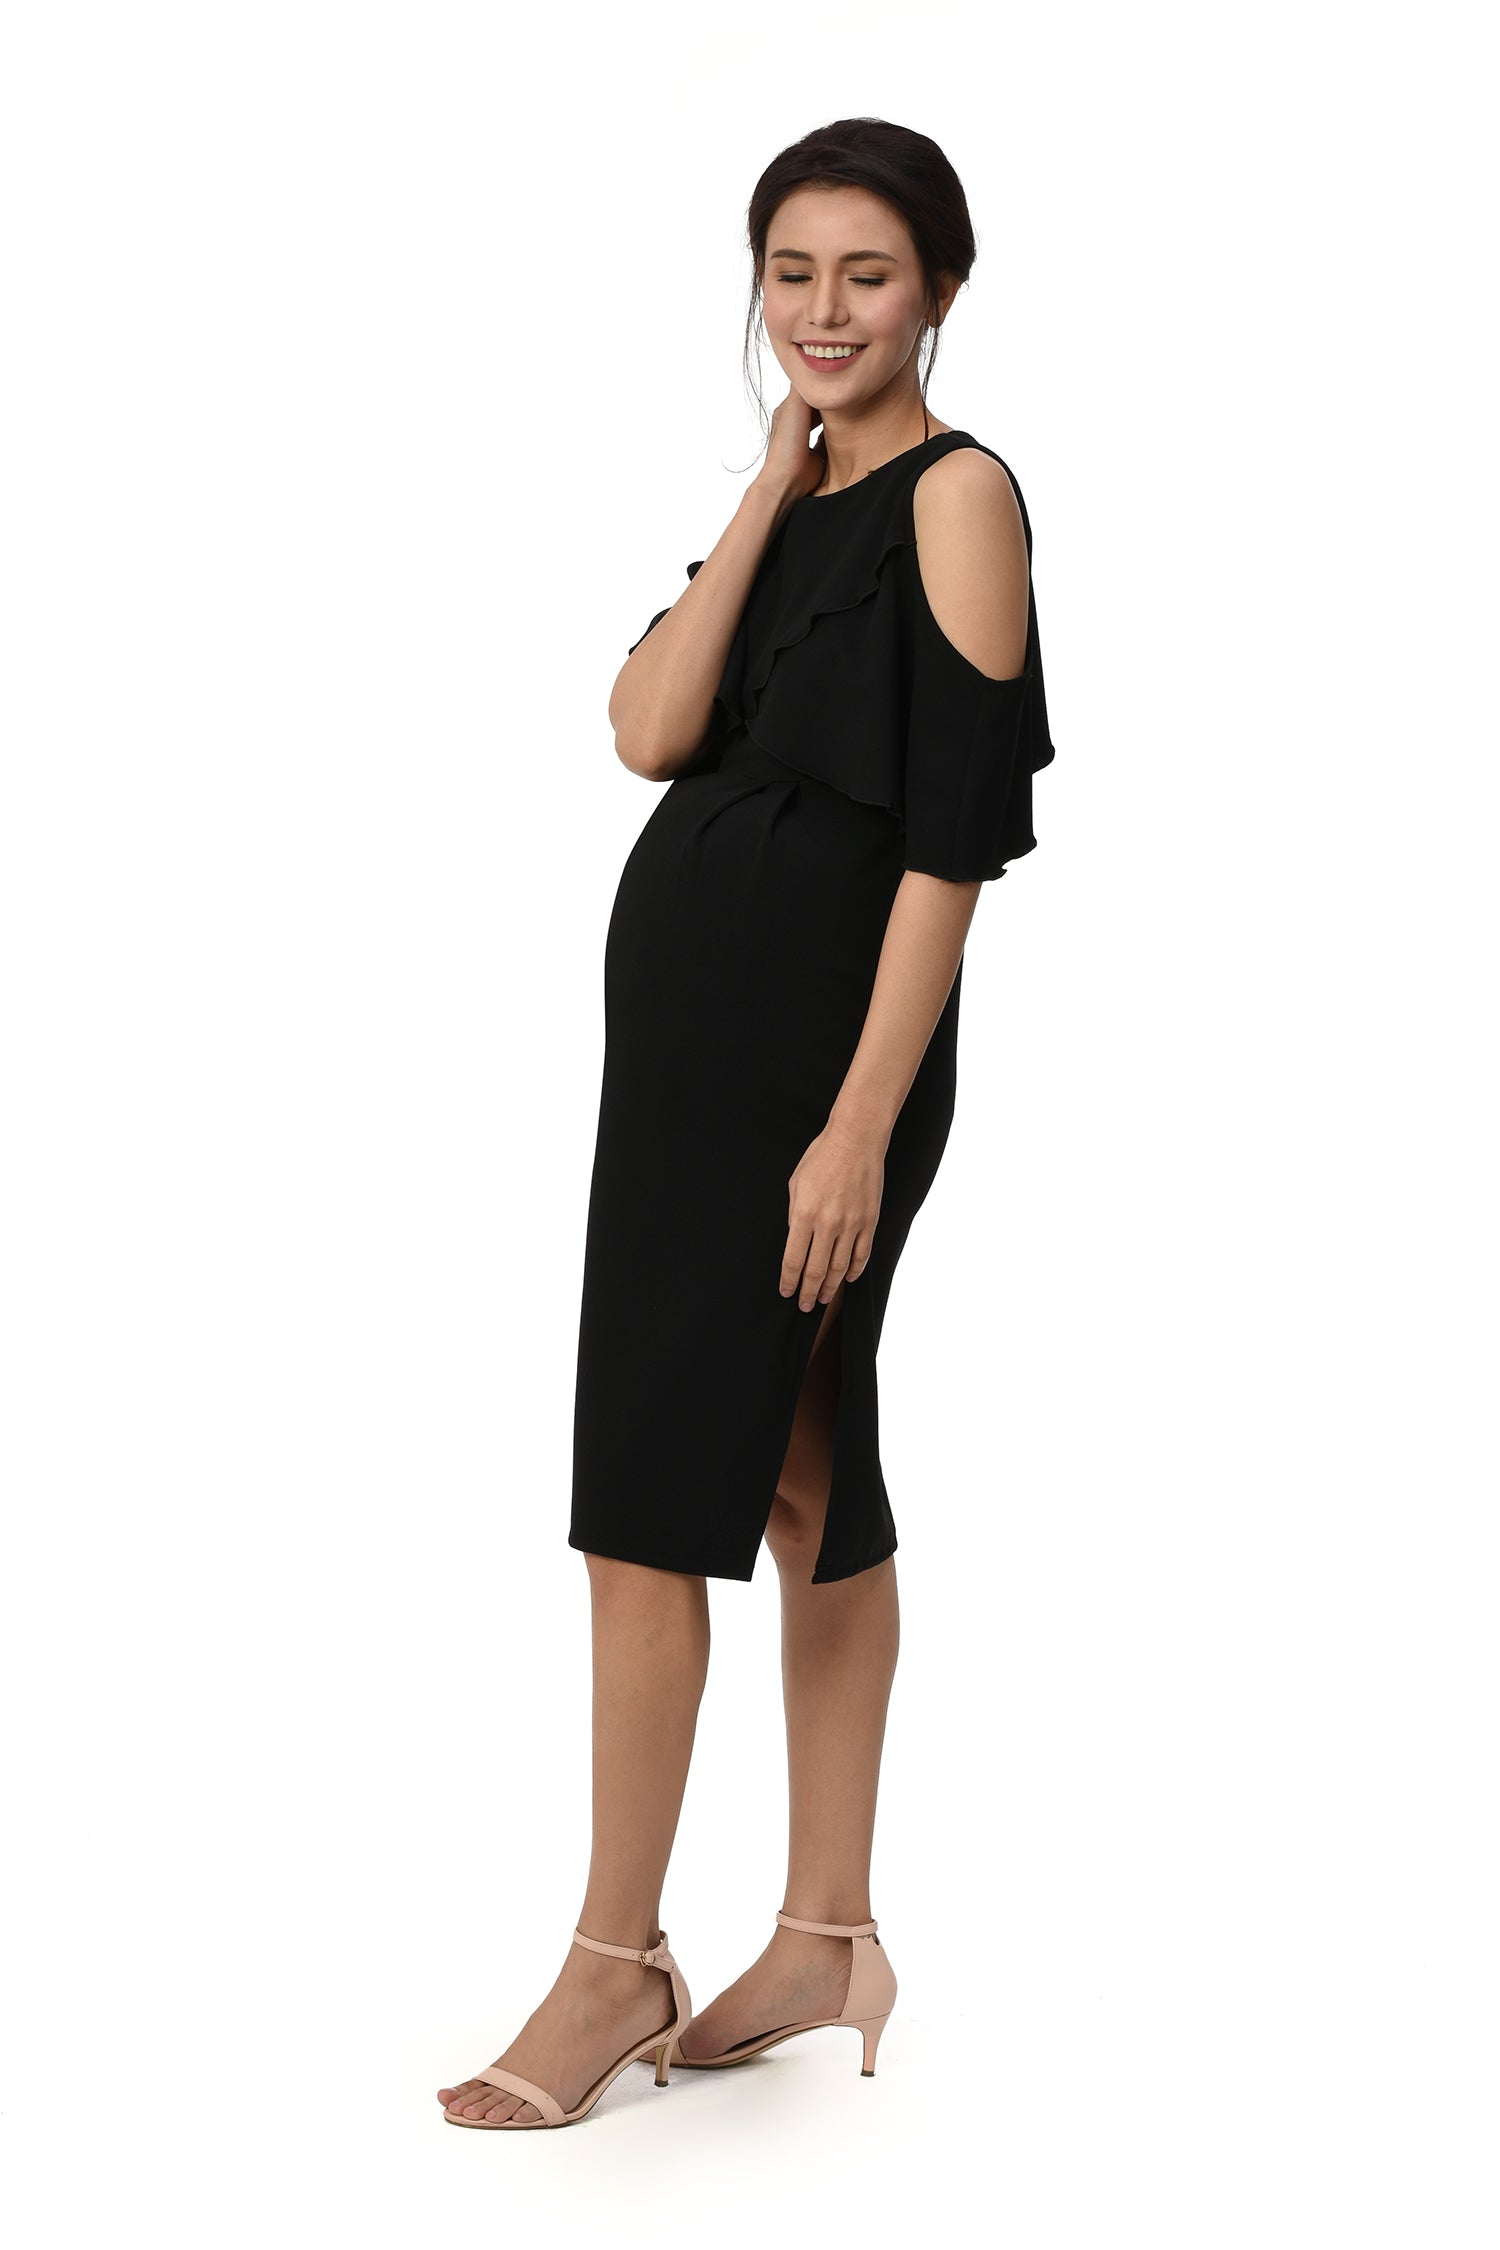 a66147fa63d Cold-Shoulder Nursing Dress (GNSD 049) – Great Expectations Maternity PH